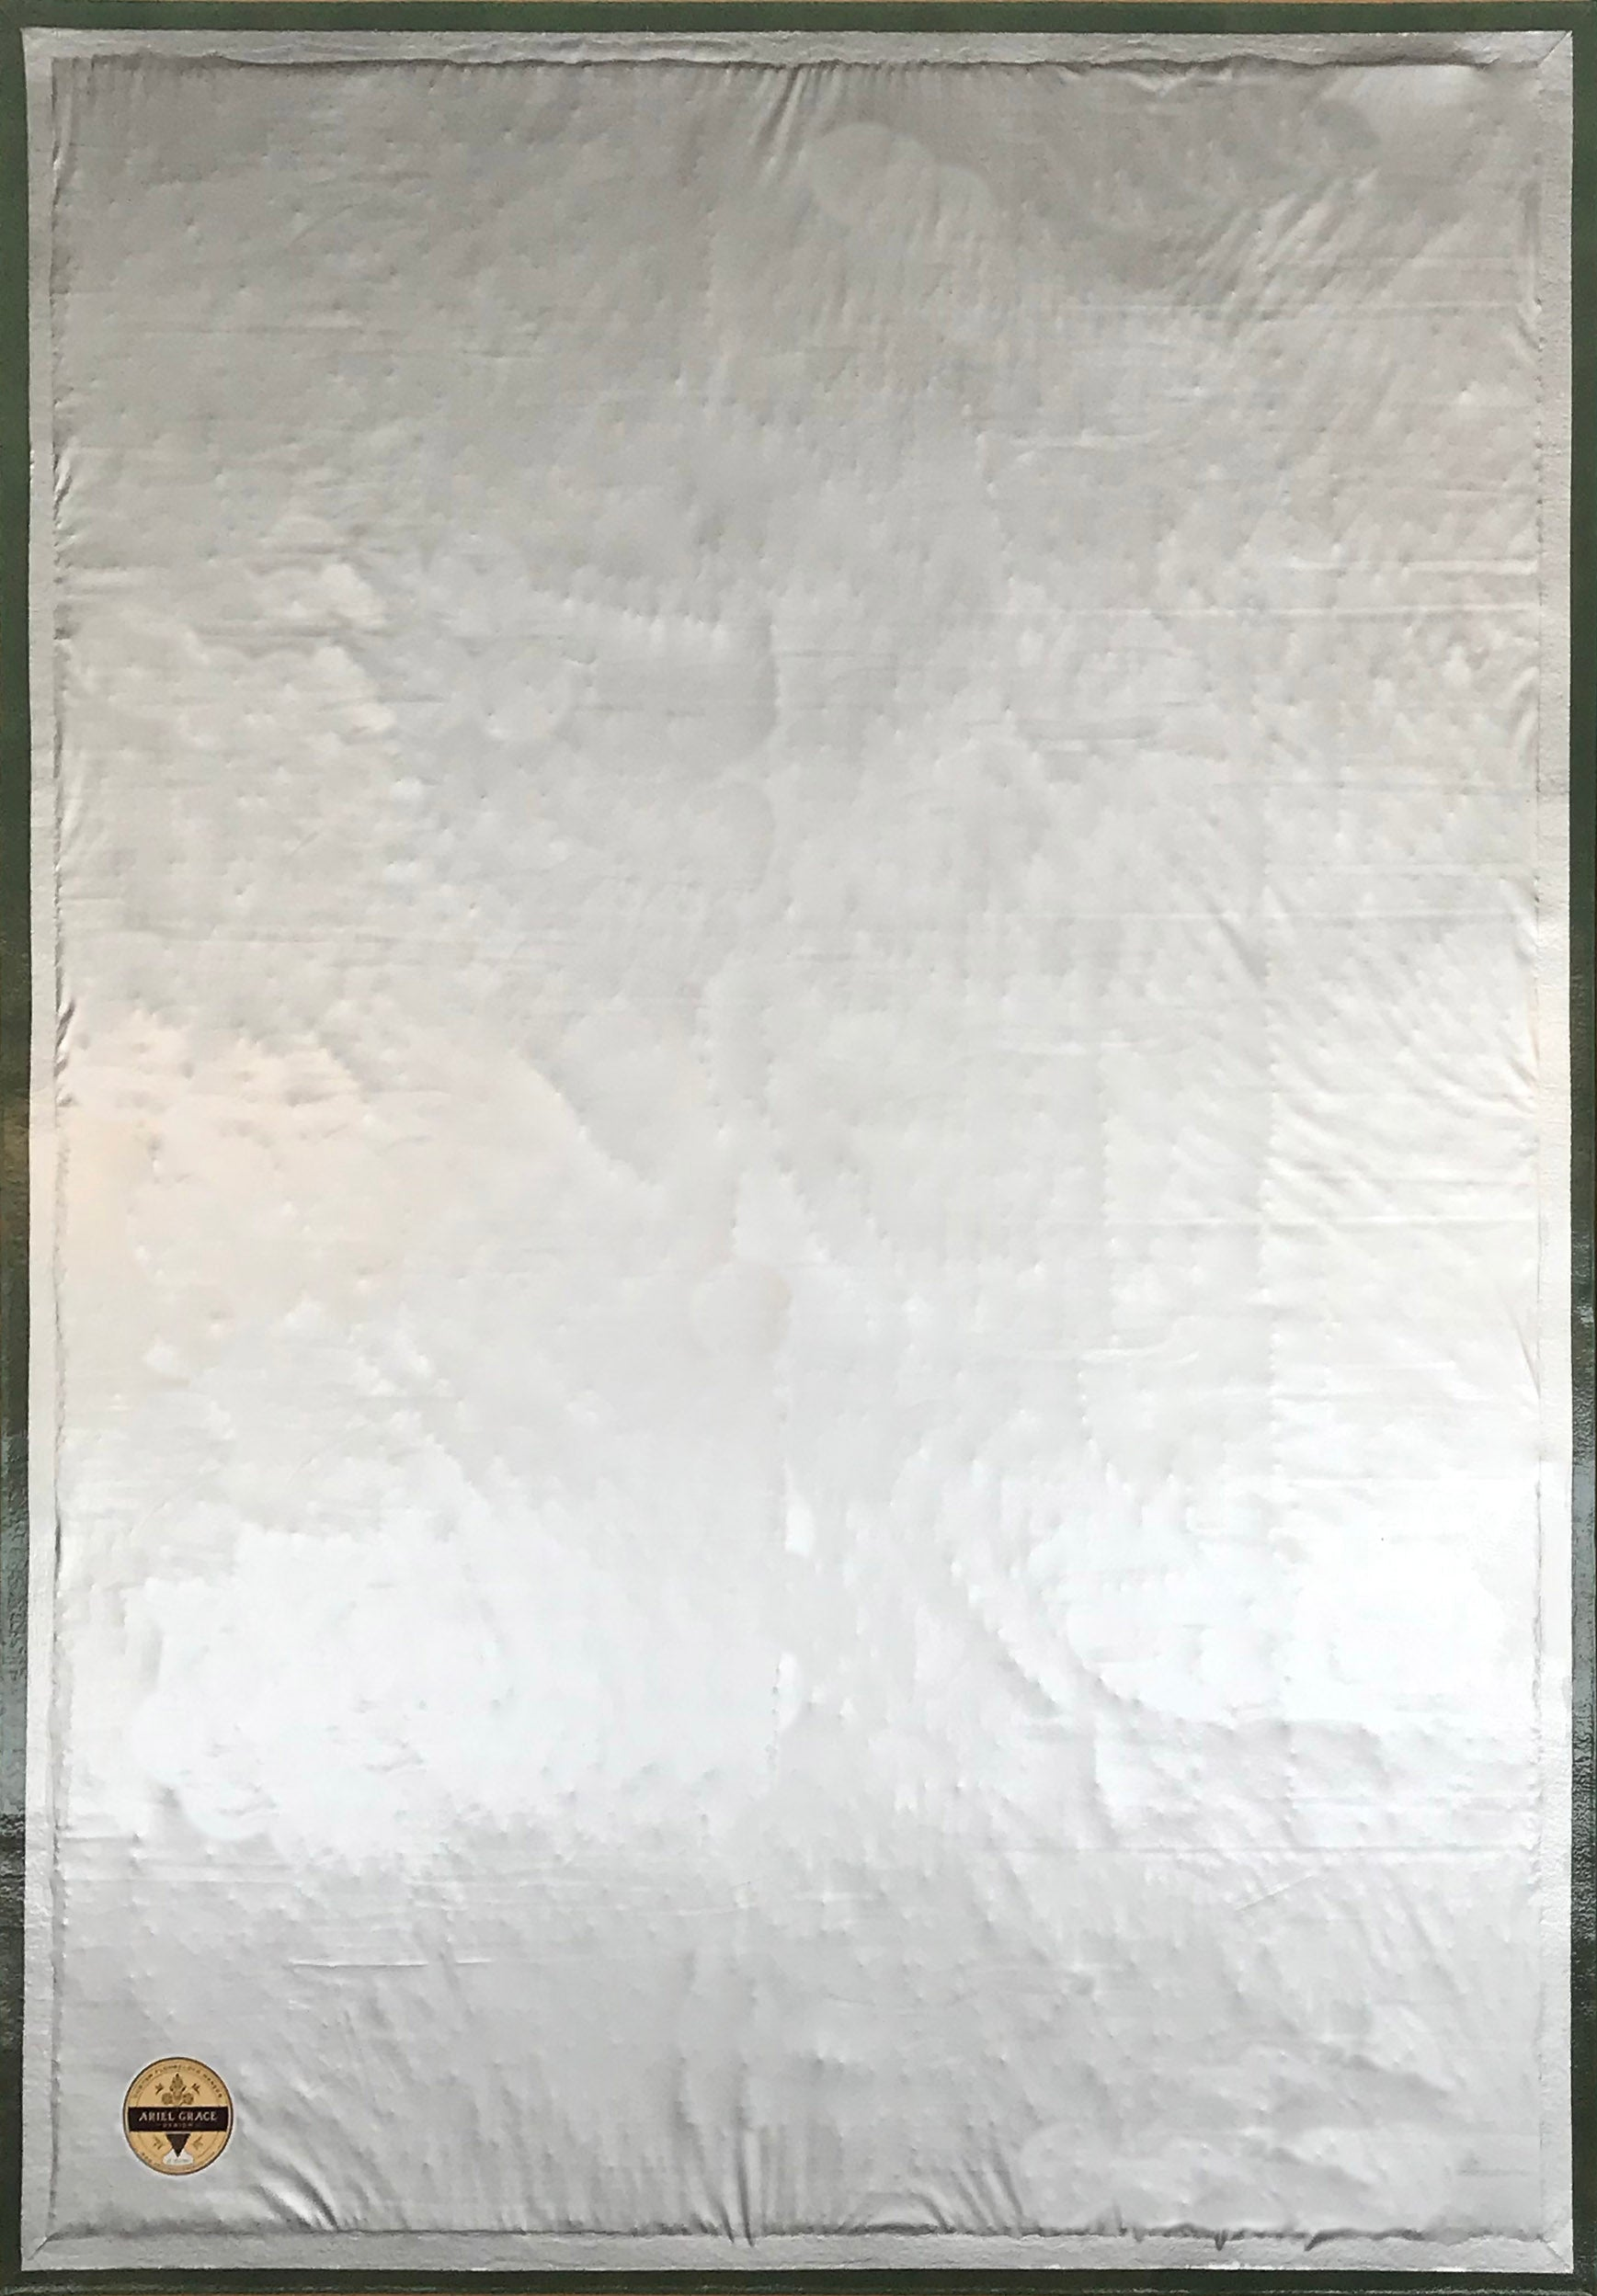 The backside of this floorcloth, showing the waterproof vinyl layer which is attached to the hem, covering a layer of carpet padding.